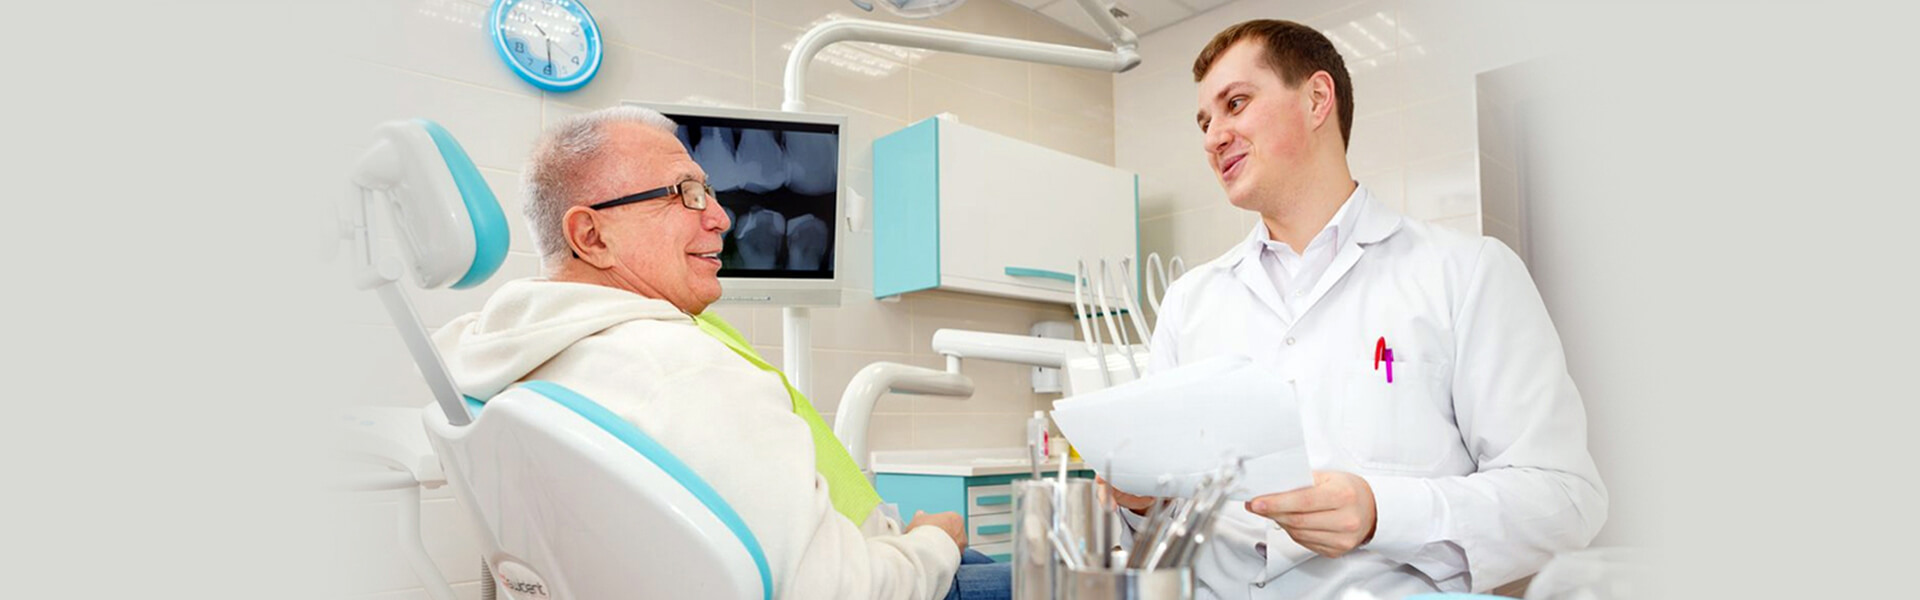 When Should a Person Switch Dentists?